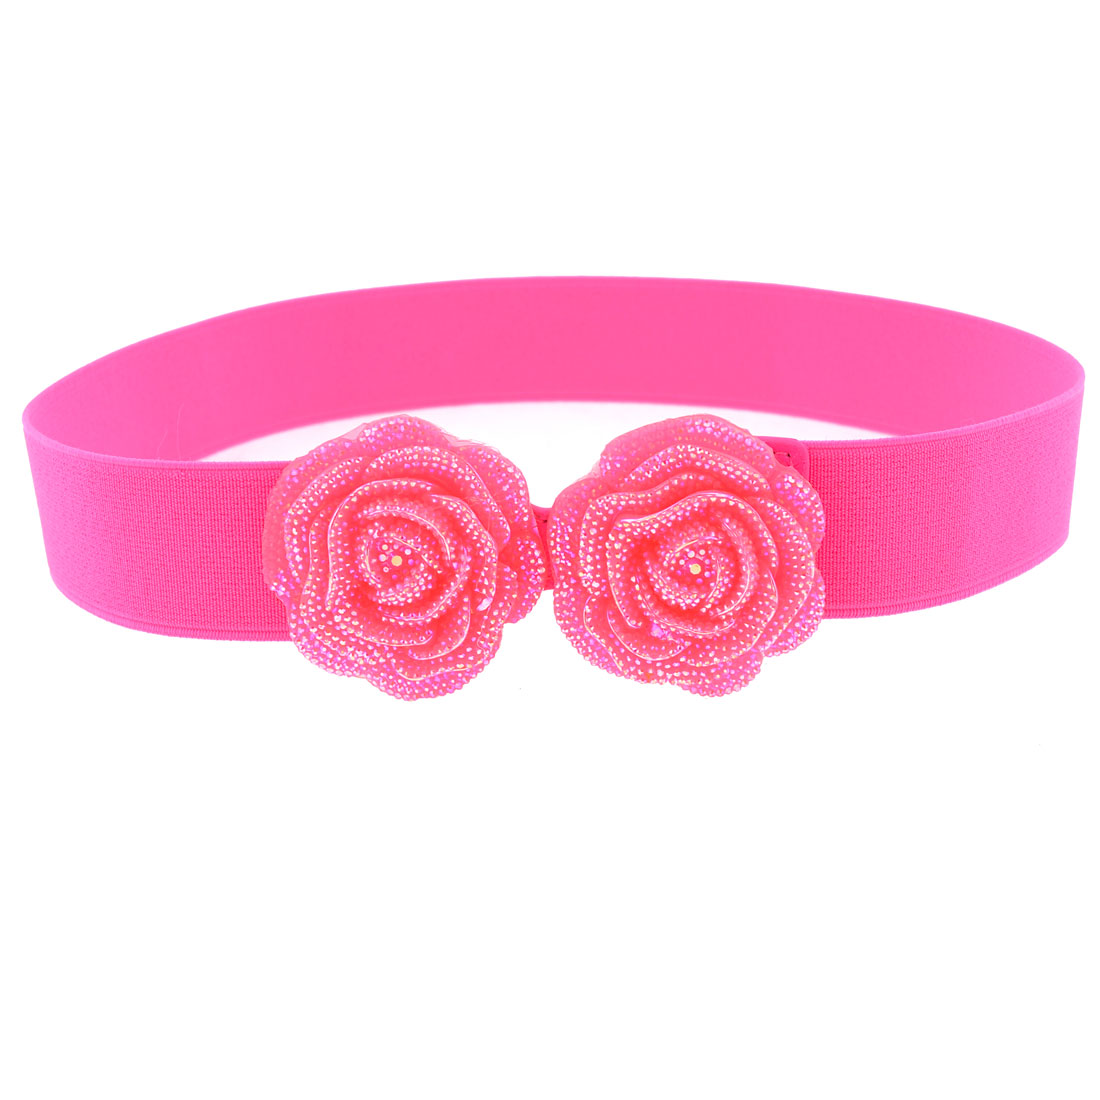 Bling Dual Rose Flower Accent Hook Buckle Hot Pink Stretch Waist Belt for Lady